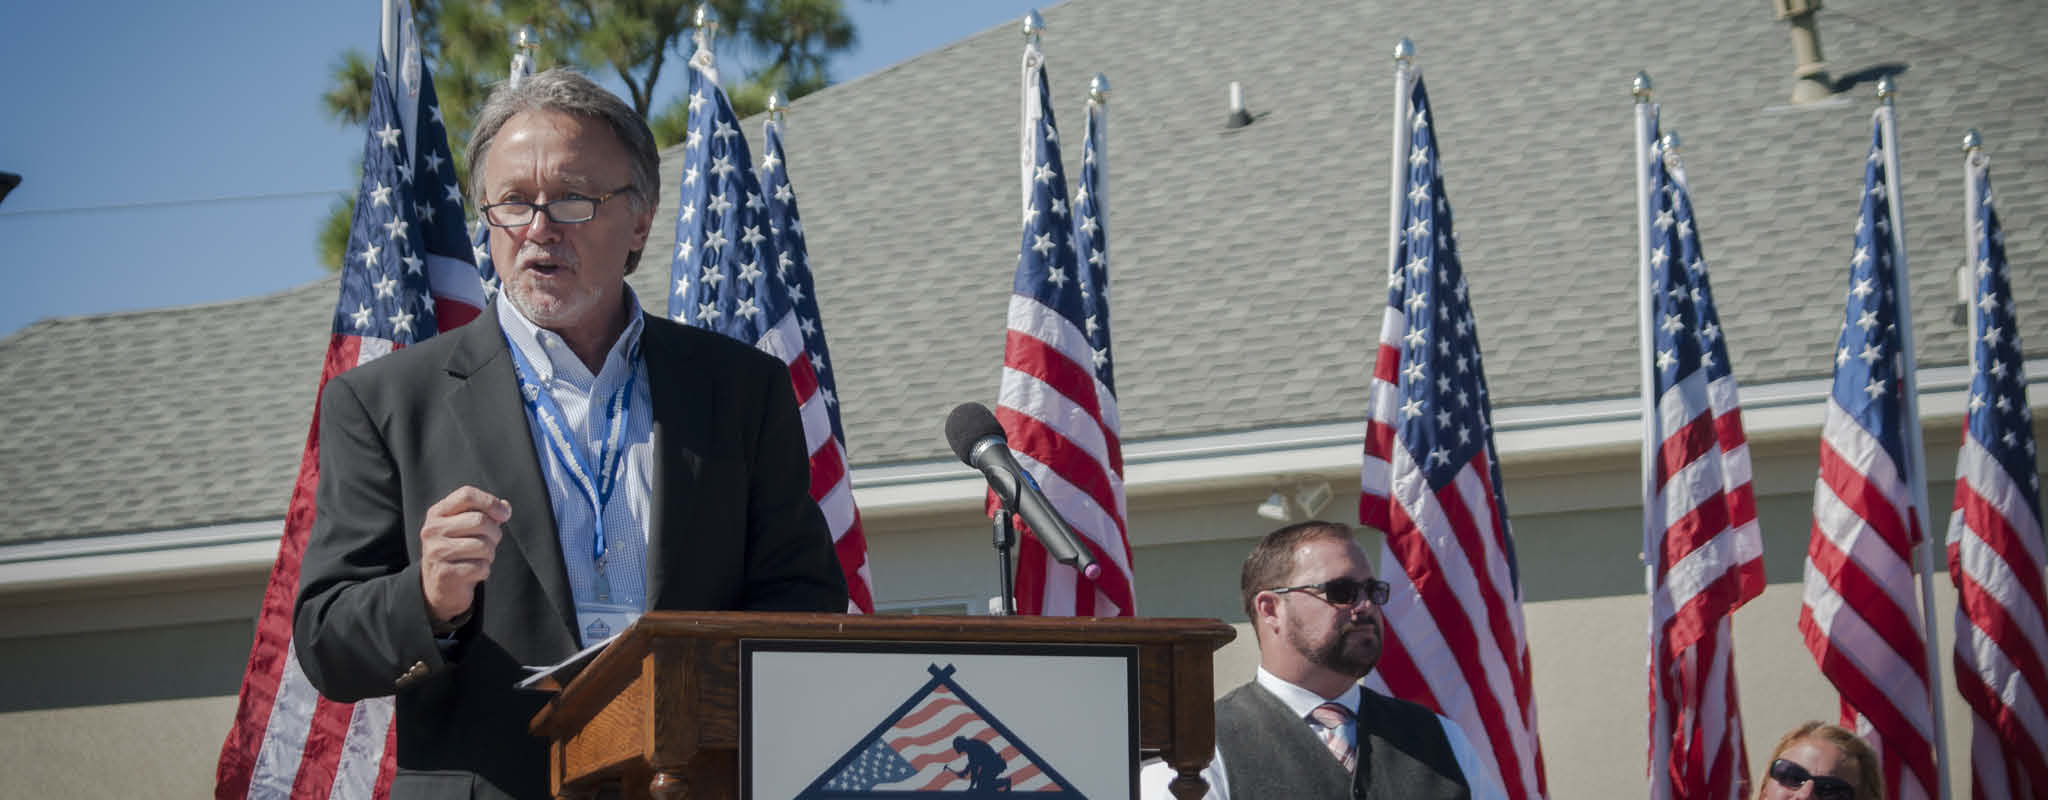 Home Presentation Ceremony for Wounded Veteran